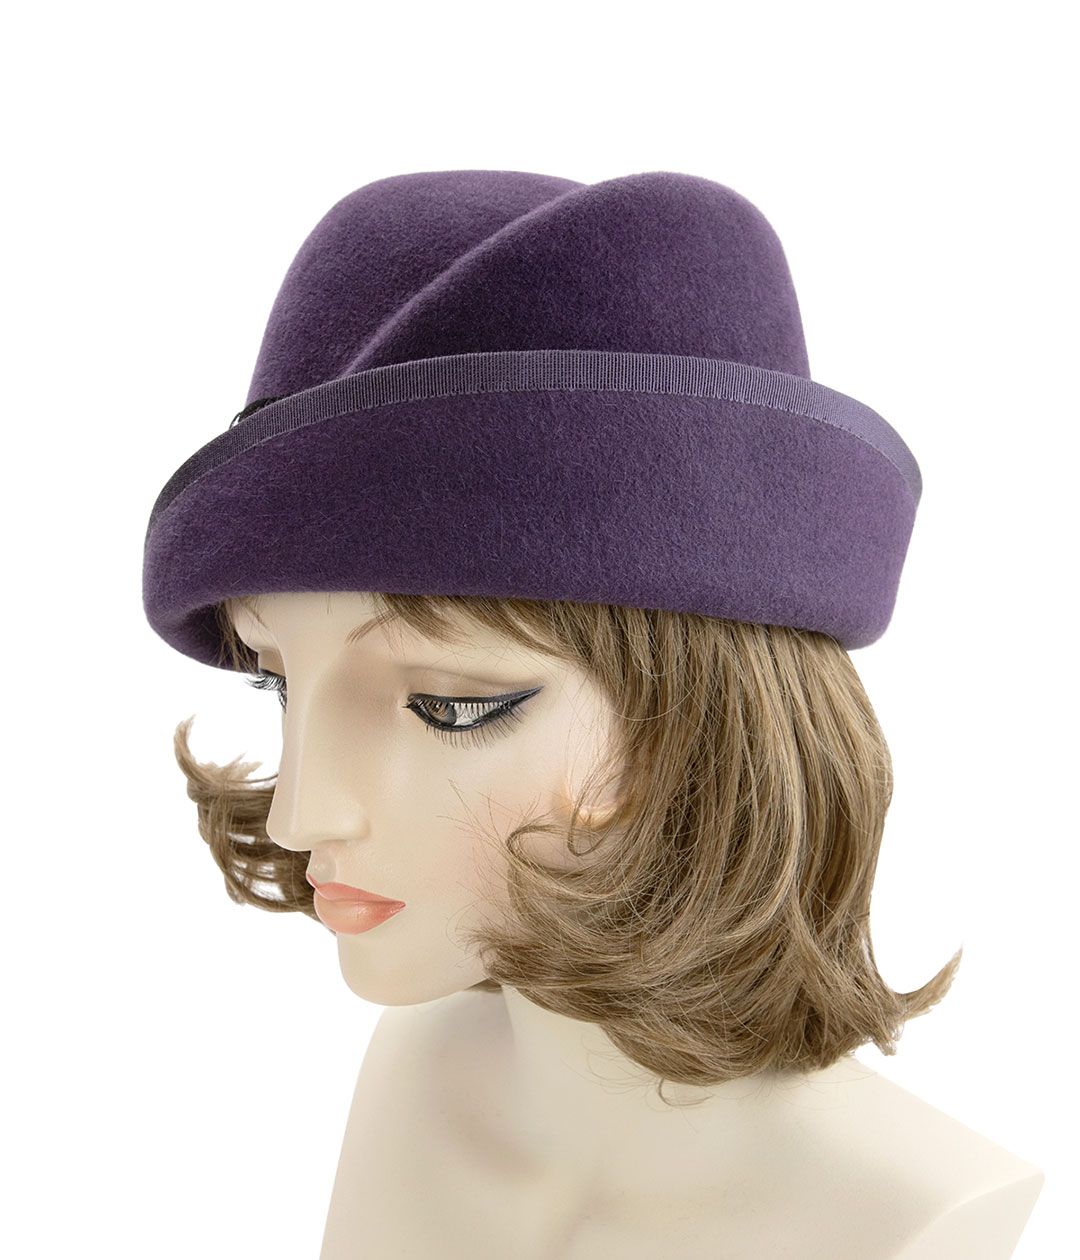 Left side view of 1920s style purple cloche